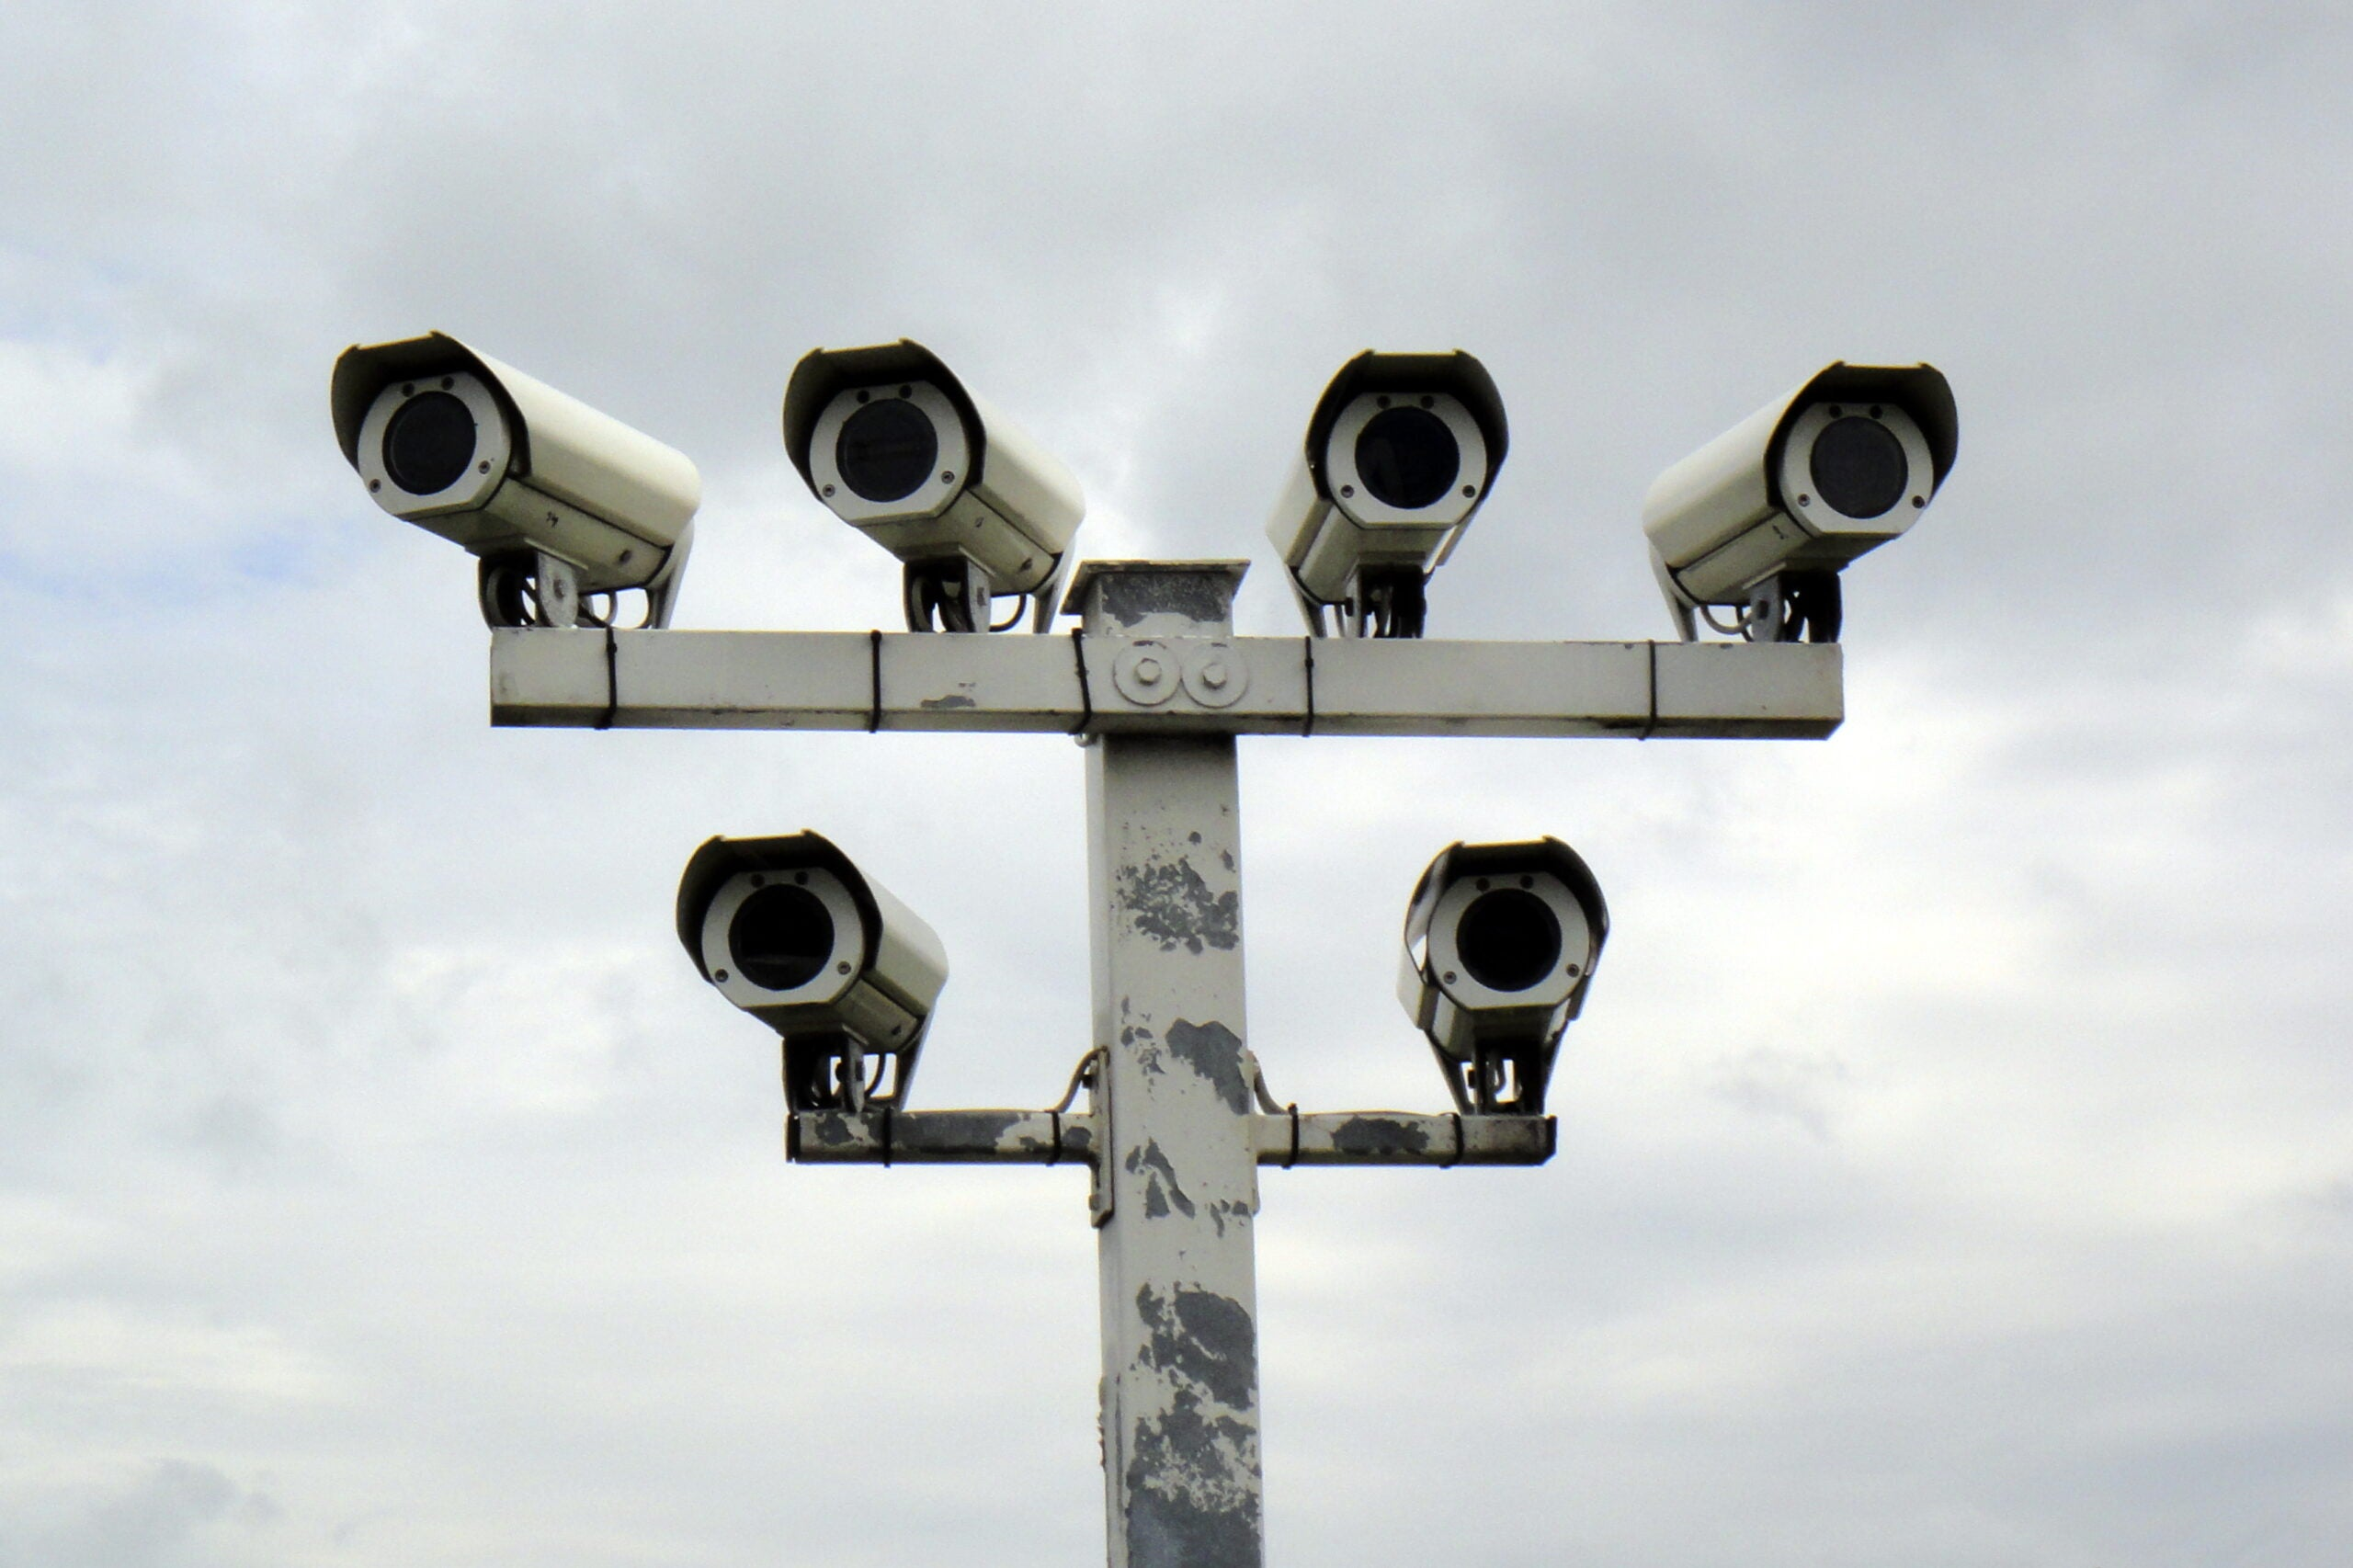 Is It Possible To Escape From Everyday Surveillance?